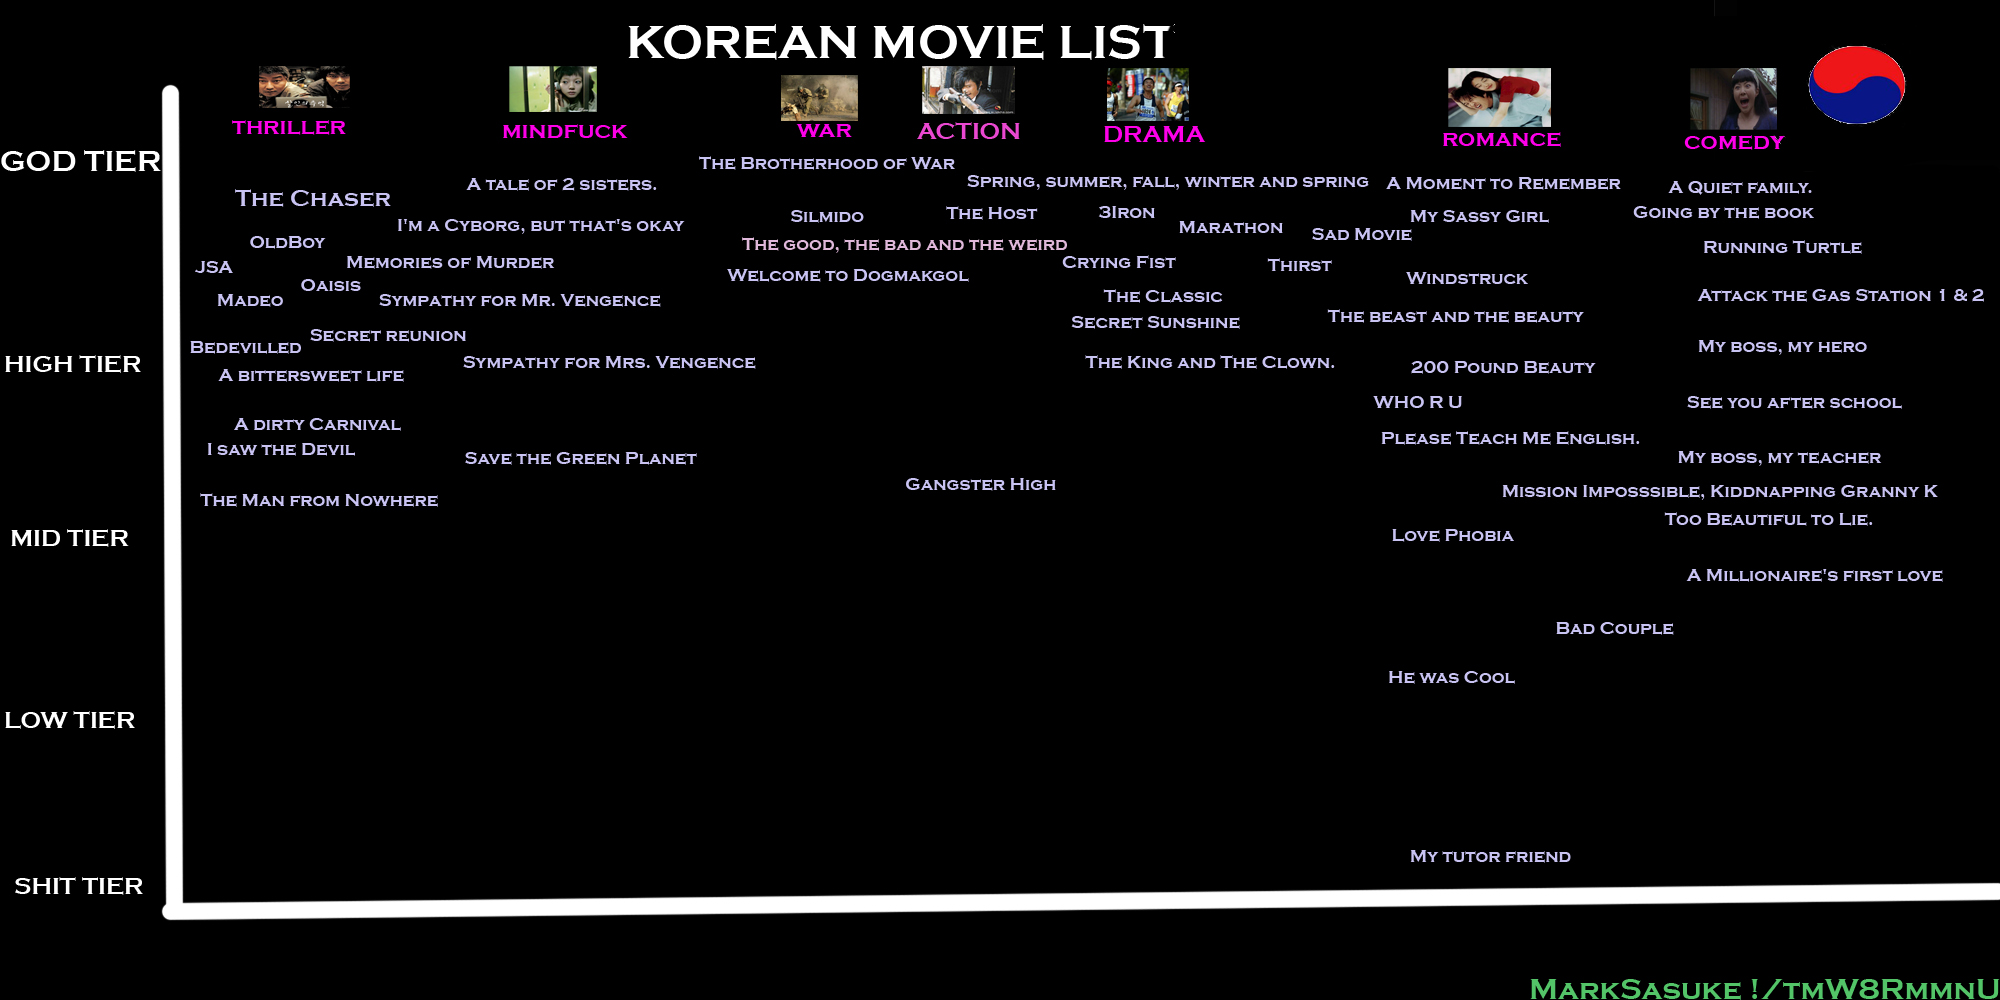 korean movie list 54 films created by marksasuke